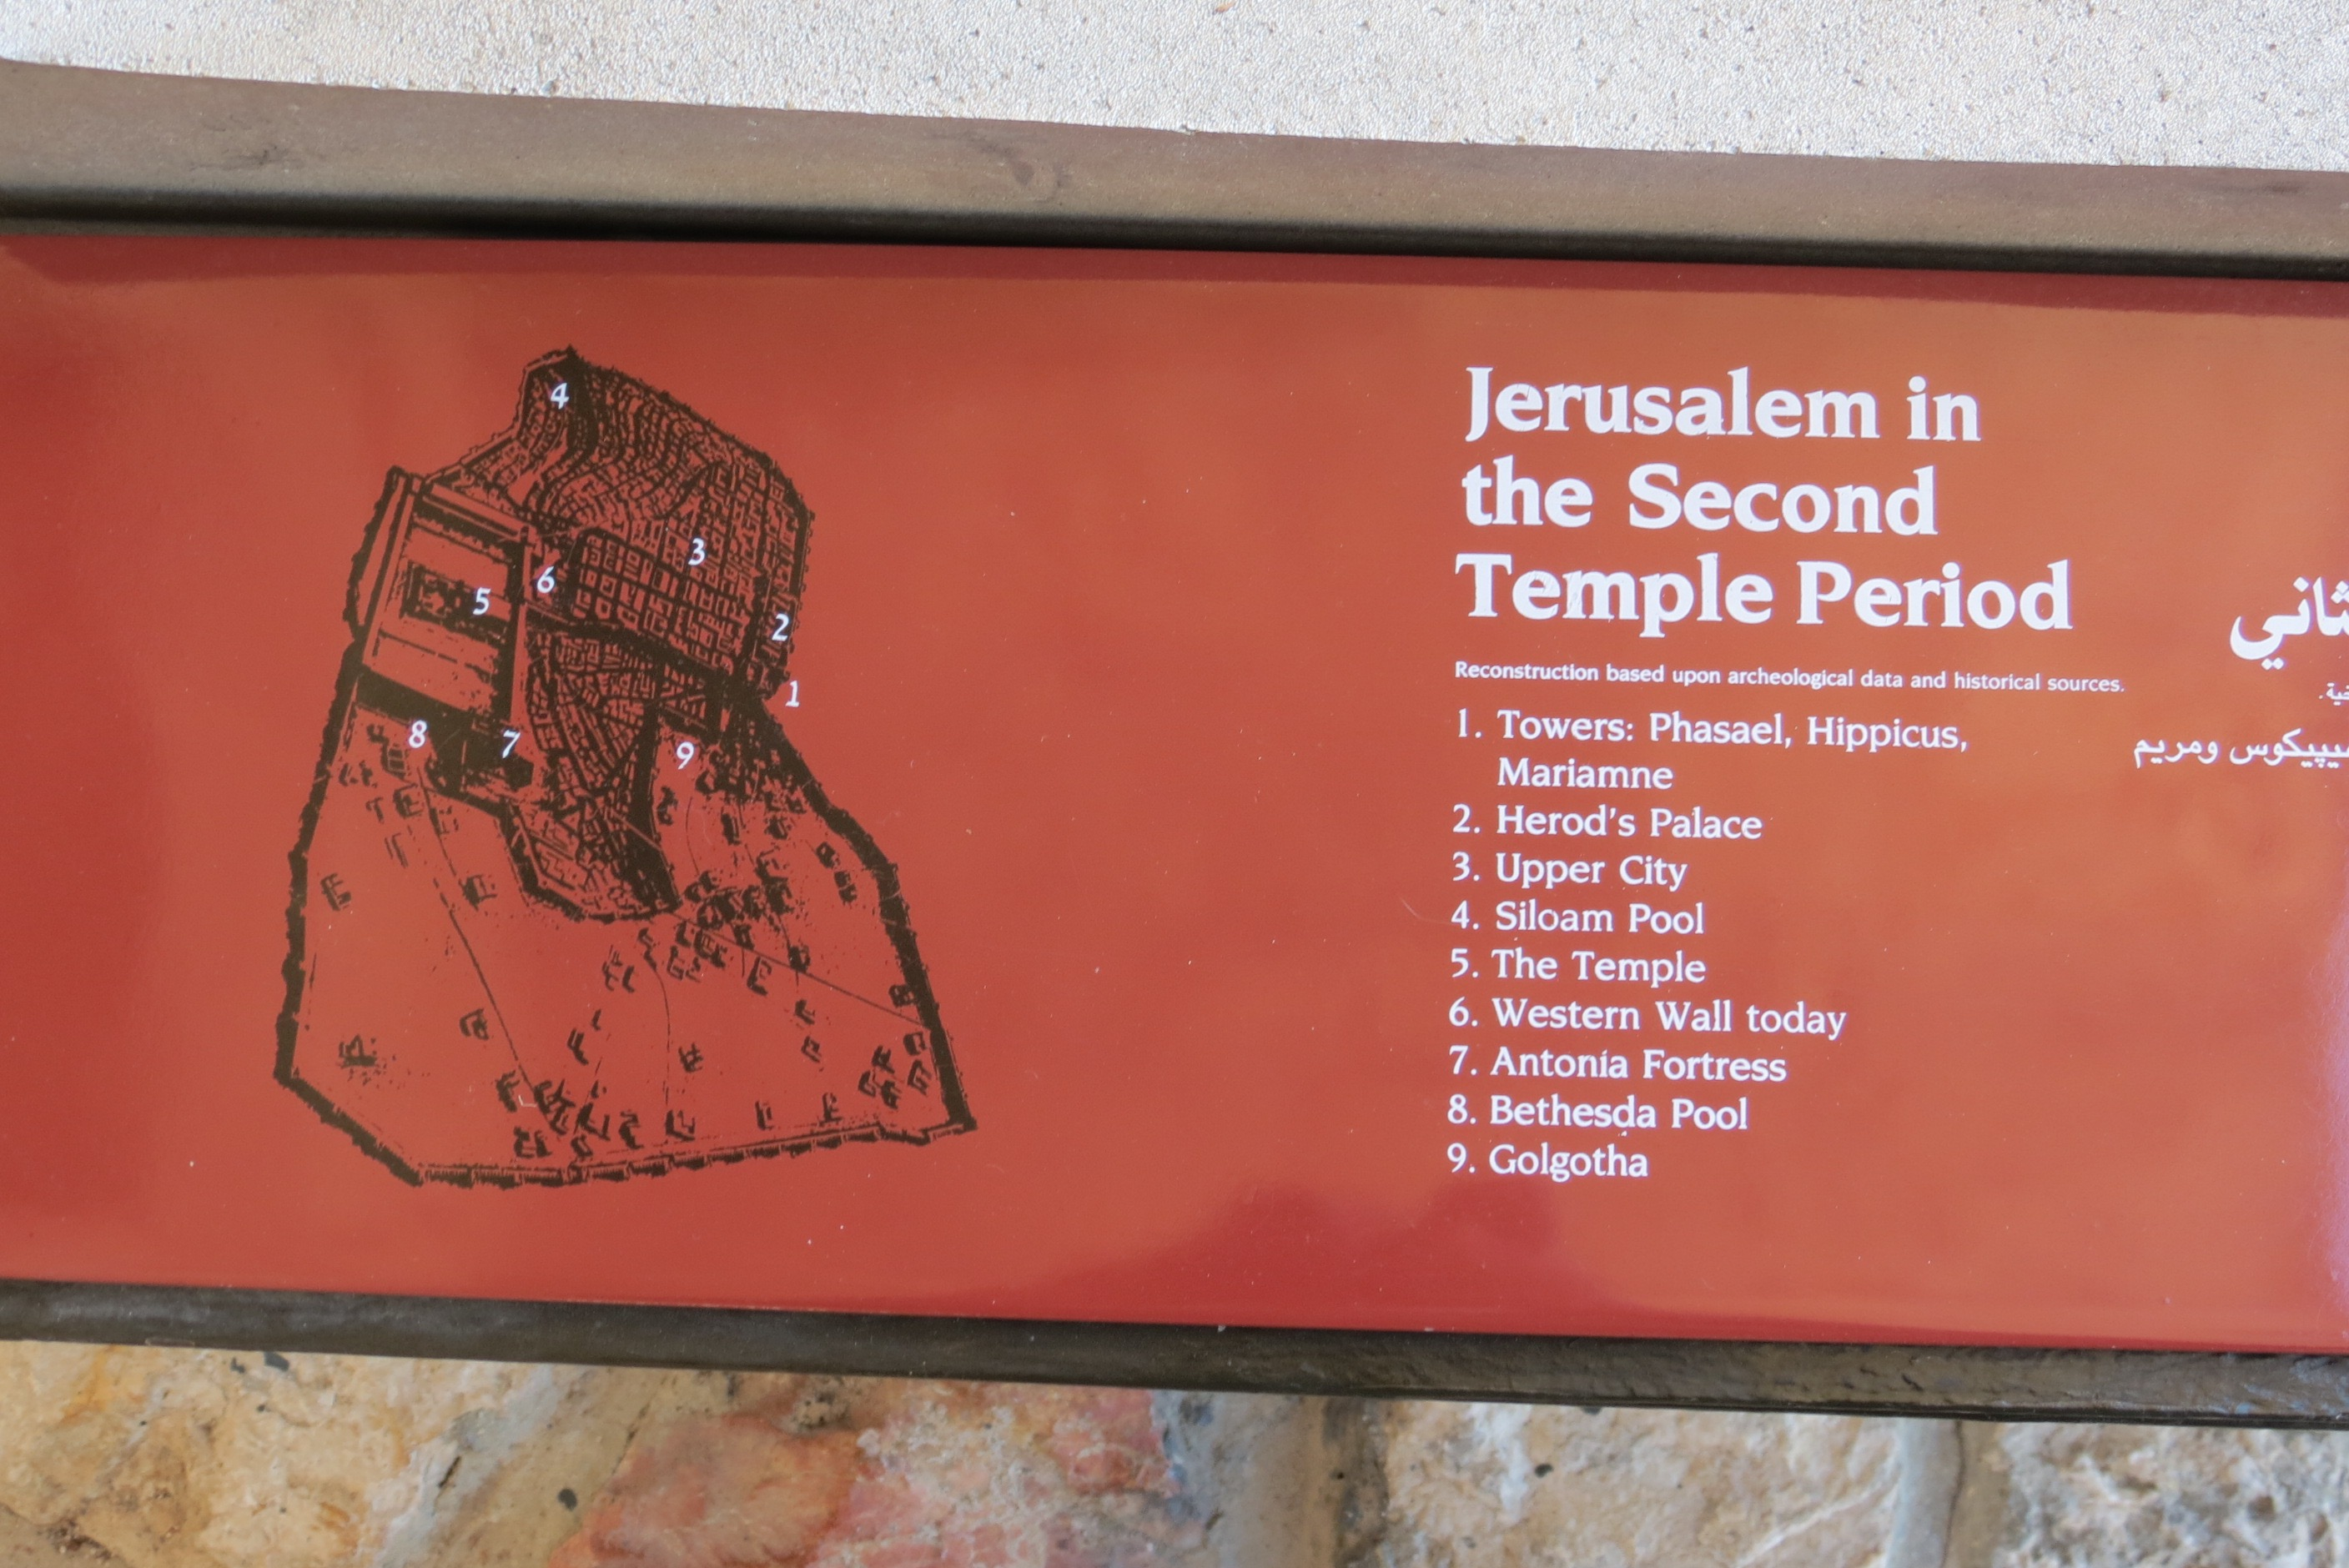 Second Temple Period